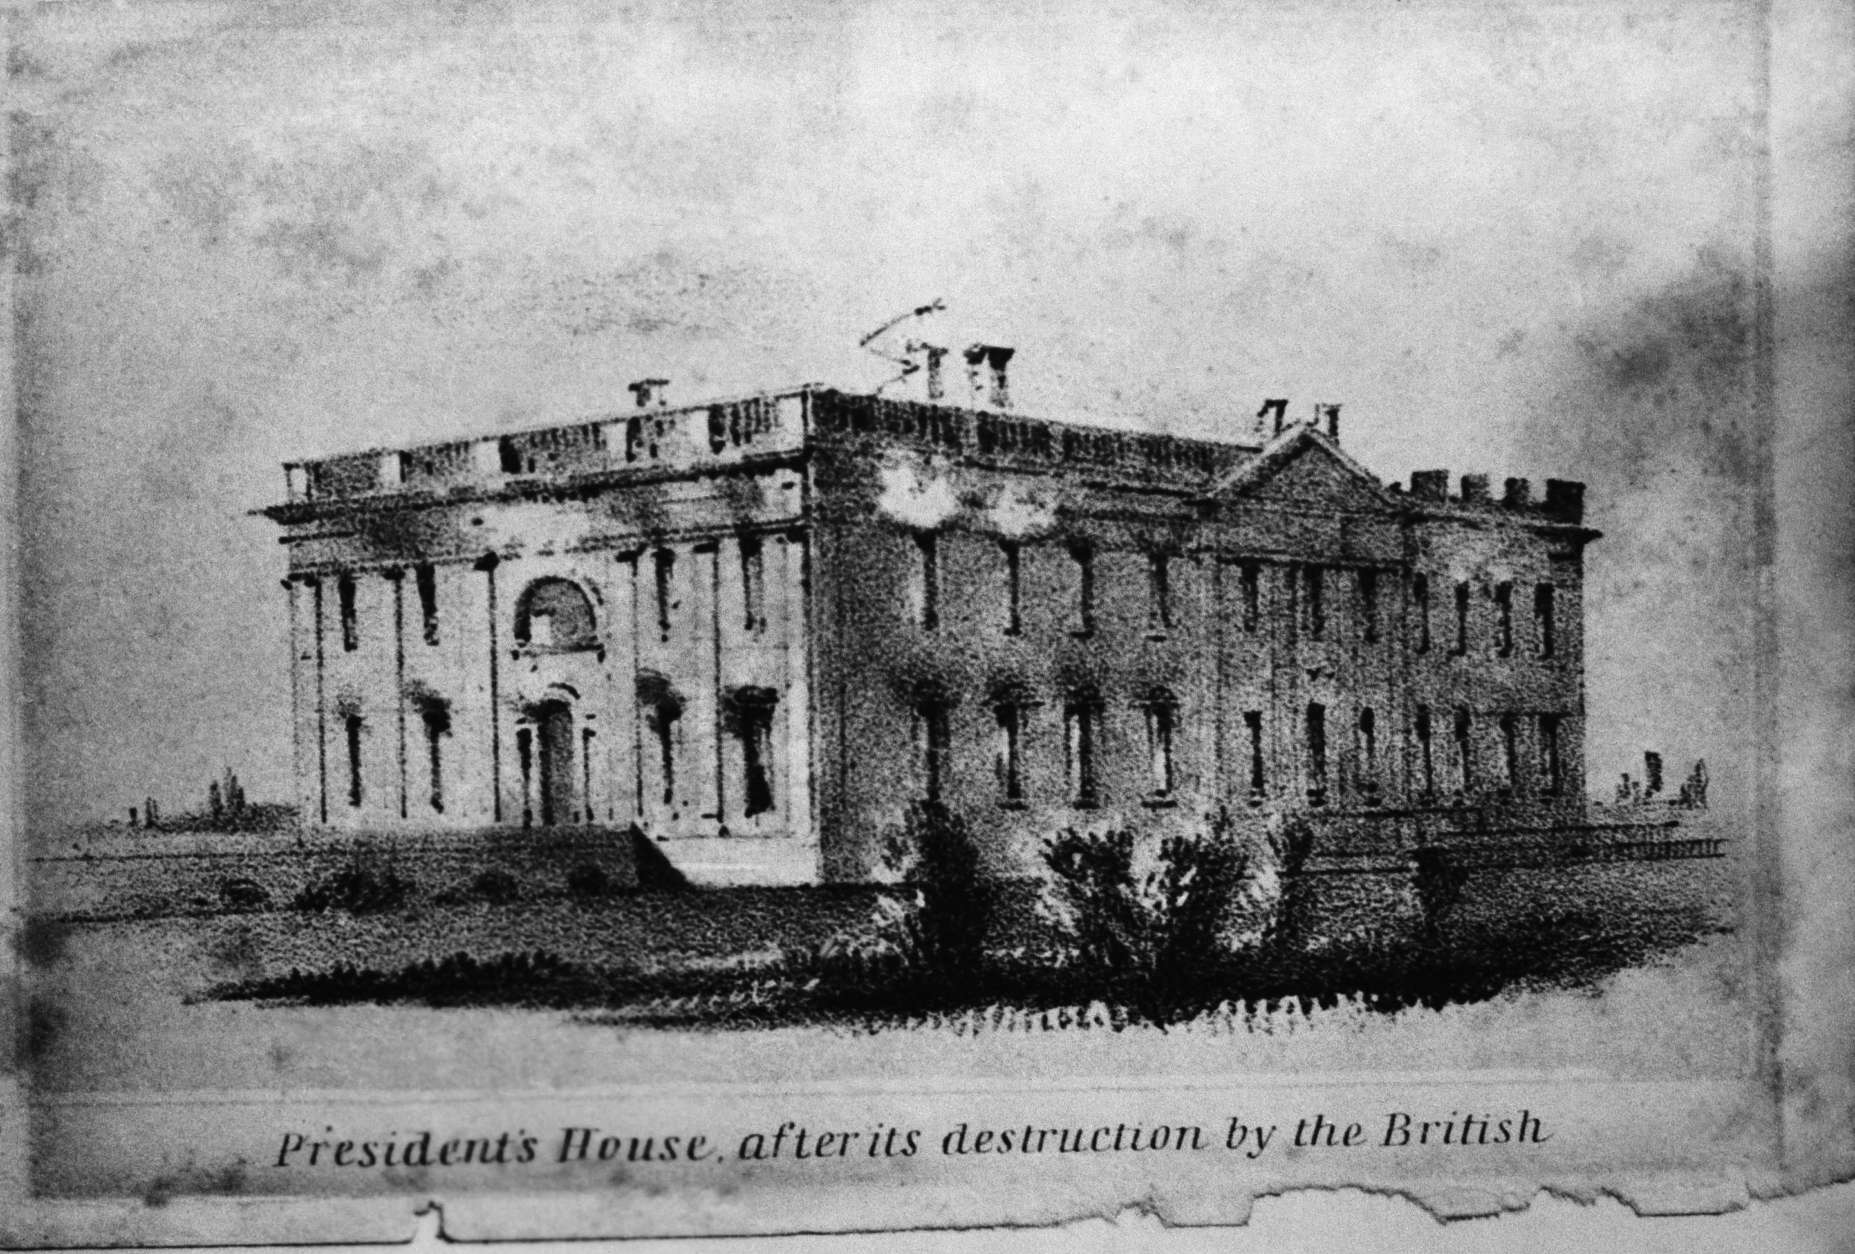 U.S. Presidents House after its destruction by the British during the War of 1812. (AP Photo)